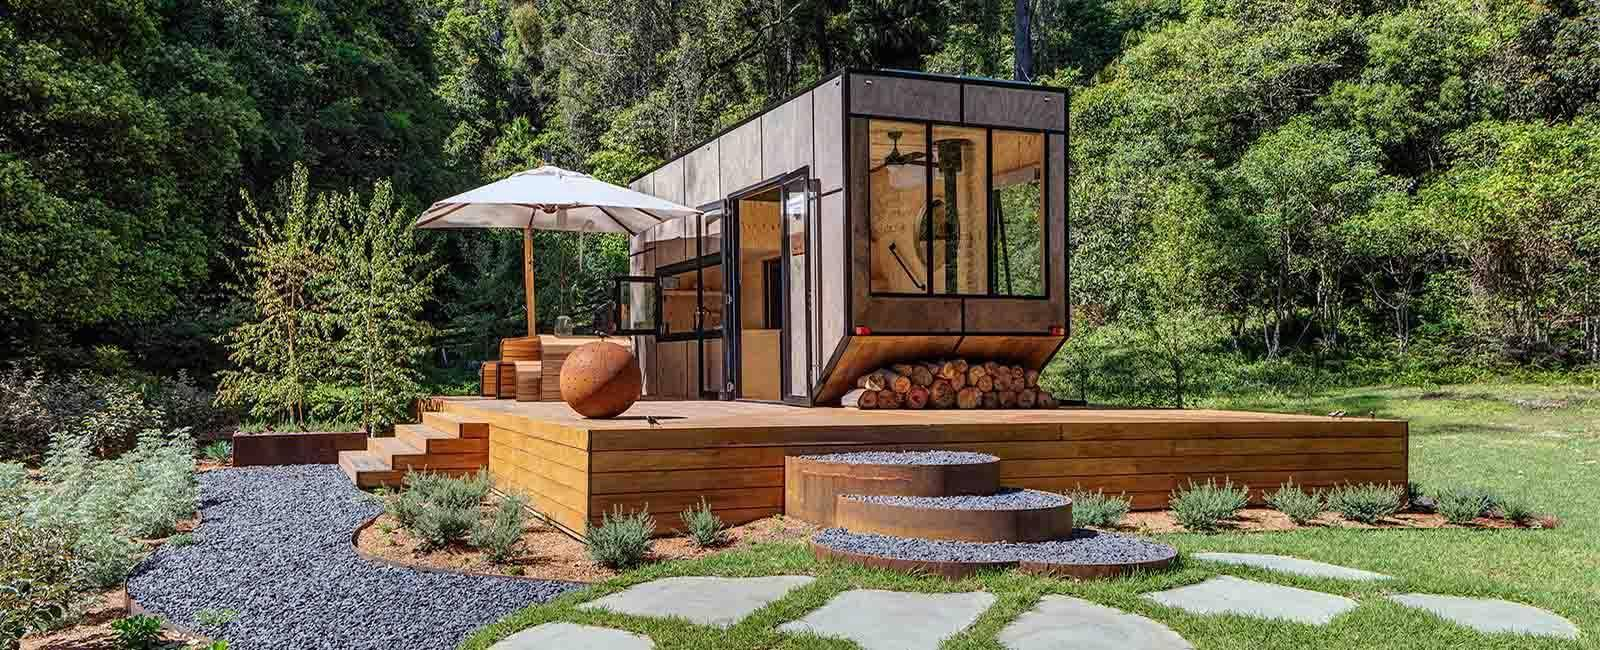 10 Of The Best Tiny Holiday Houses In Australia